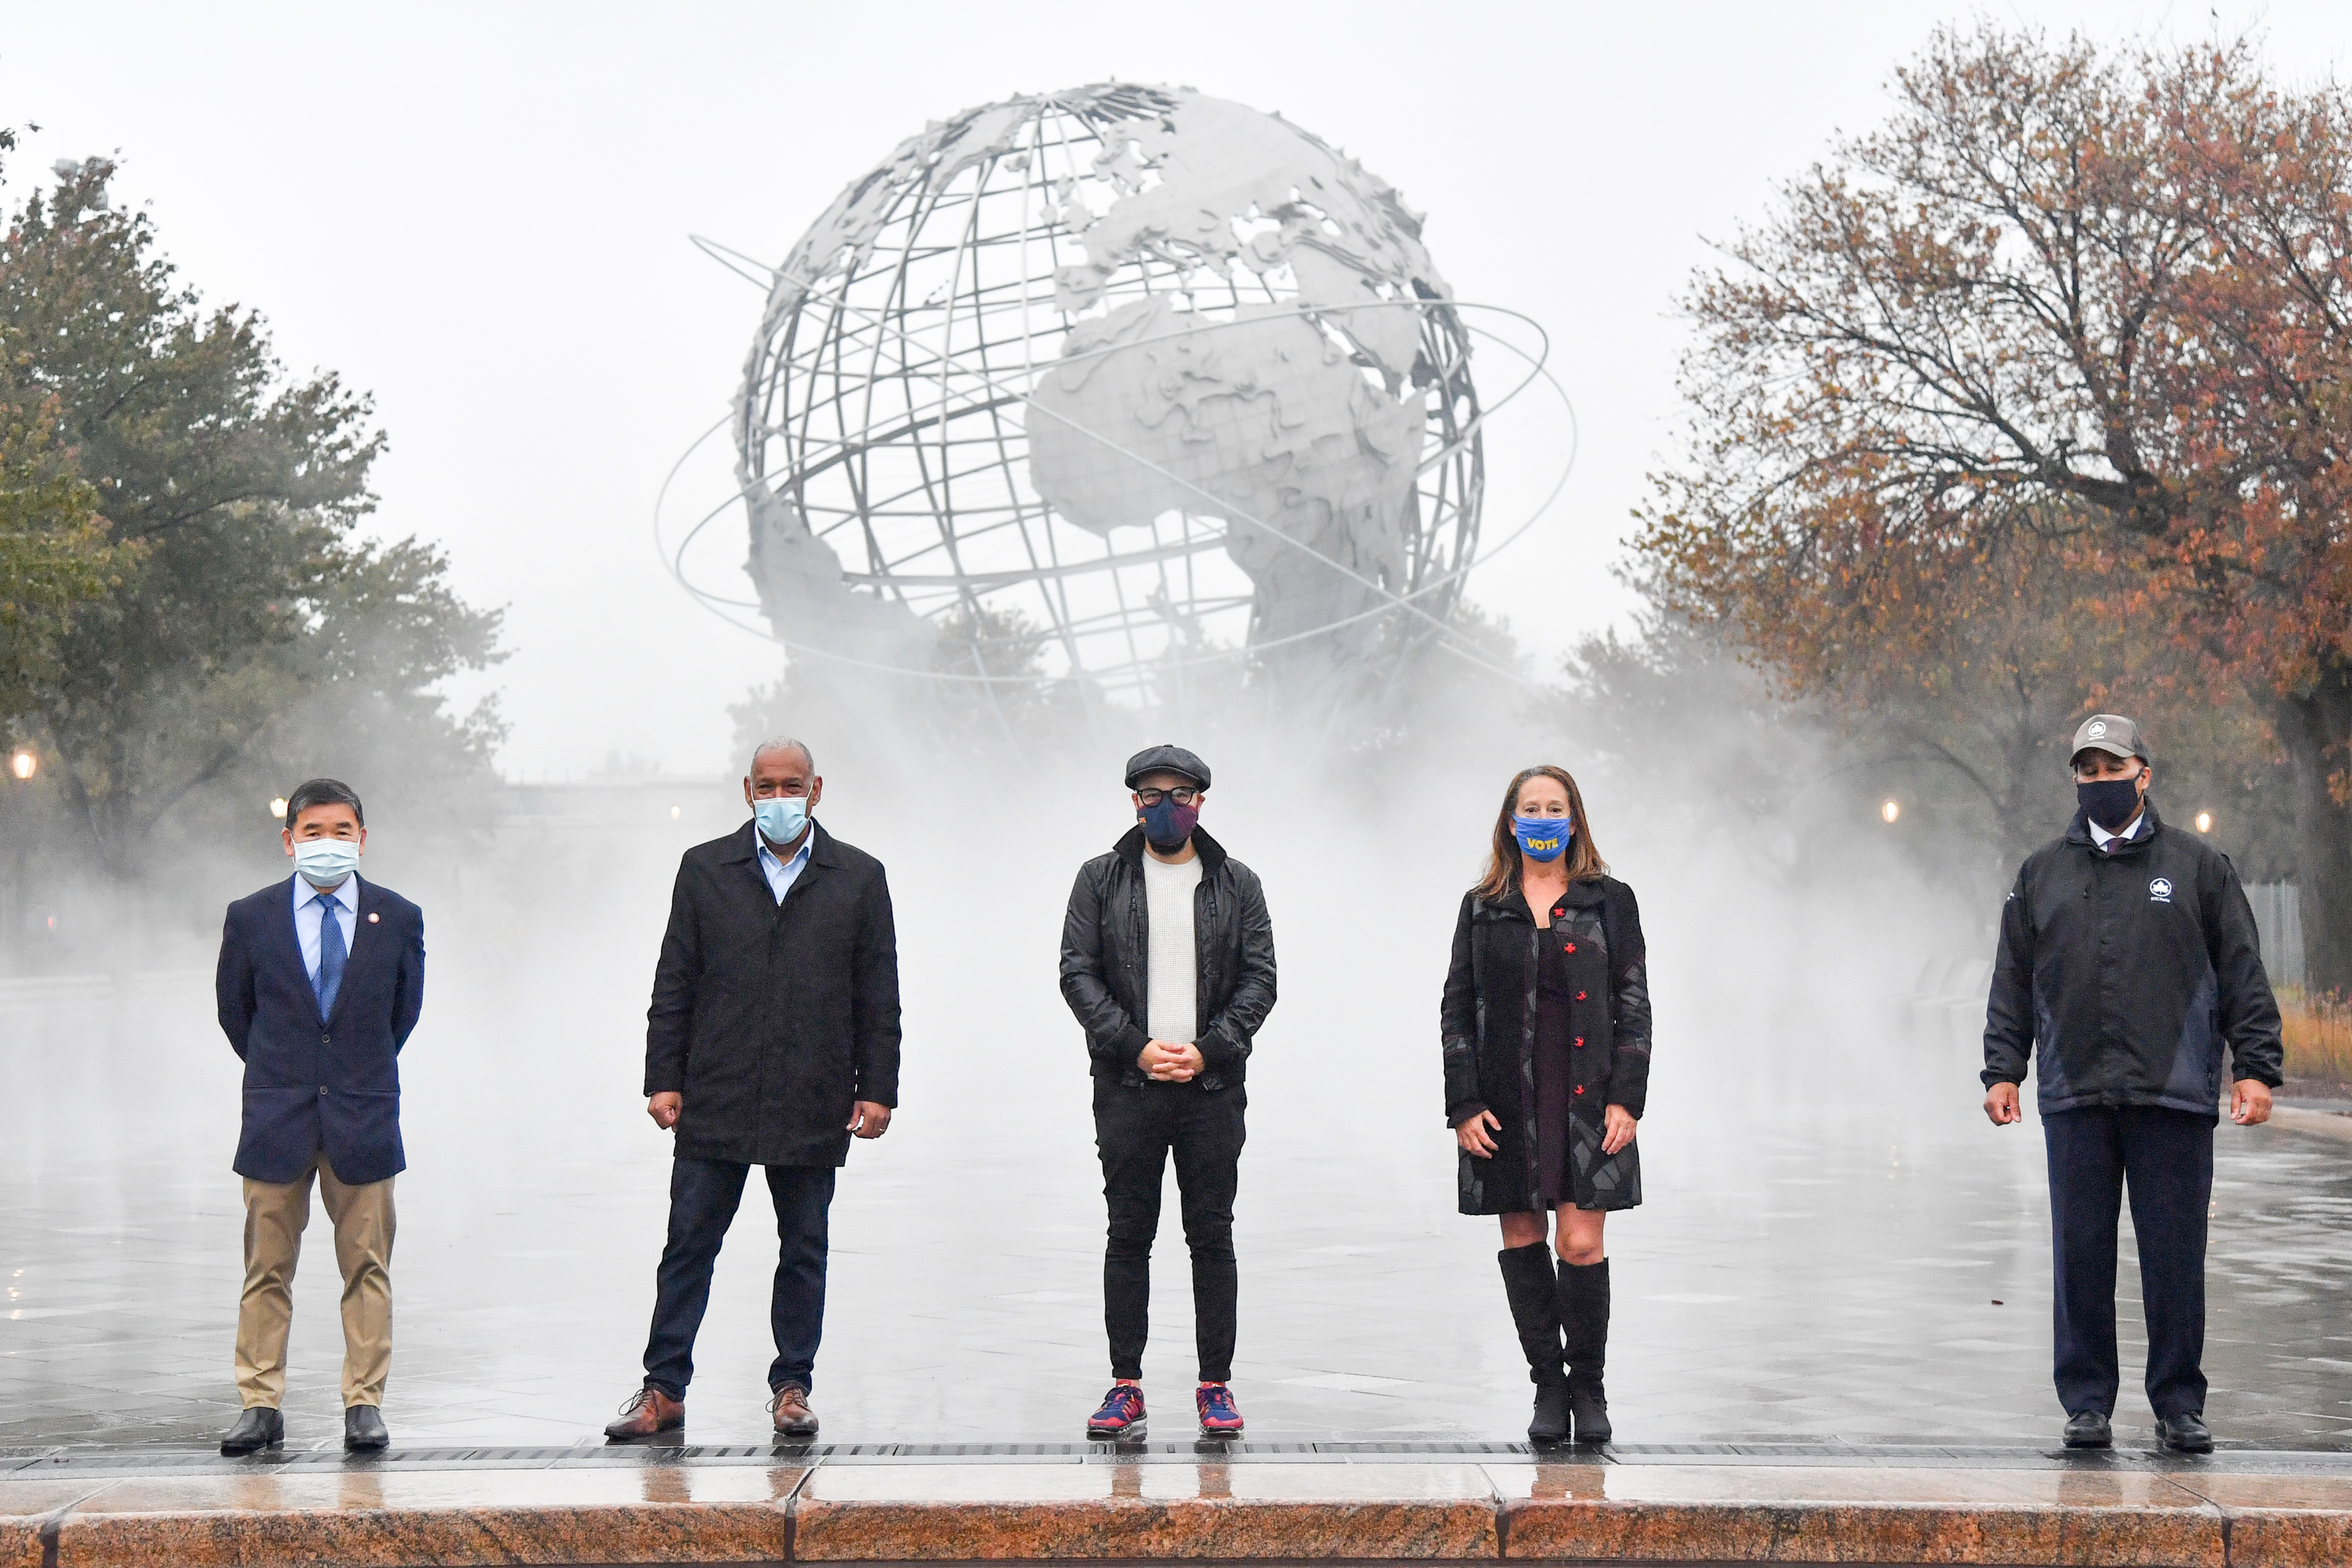 See the new misting plaza at Flushing Meadows Corona Park